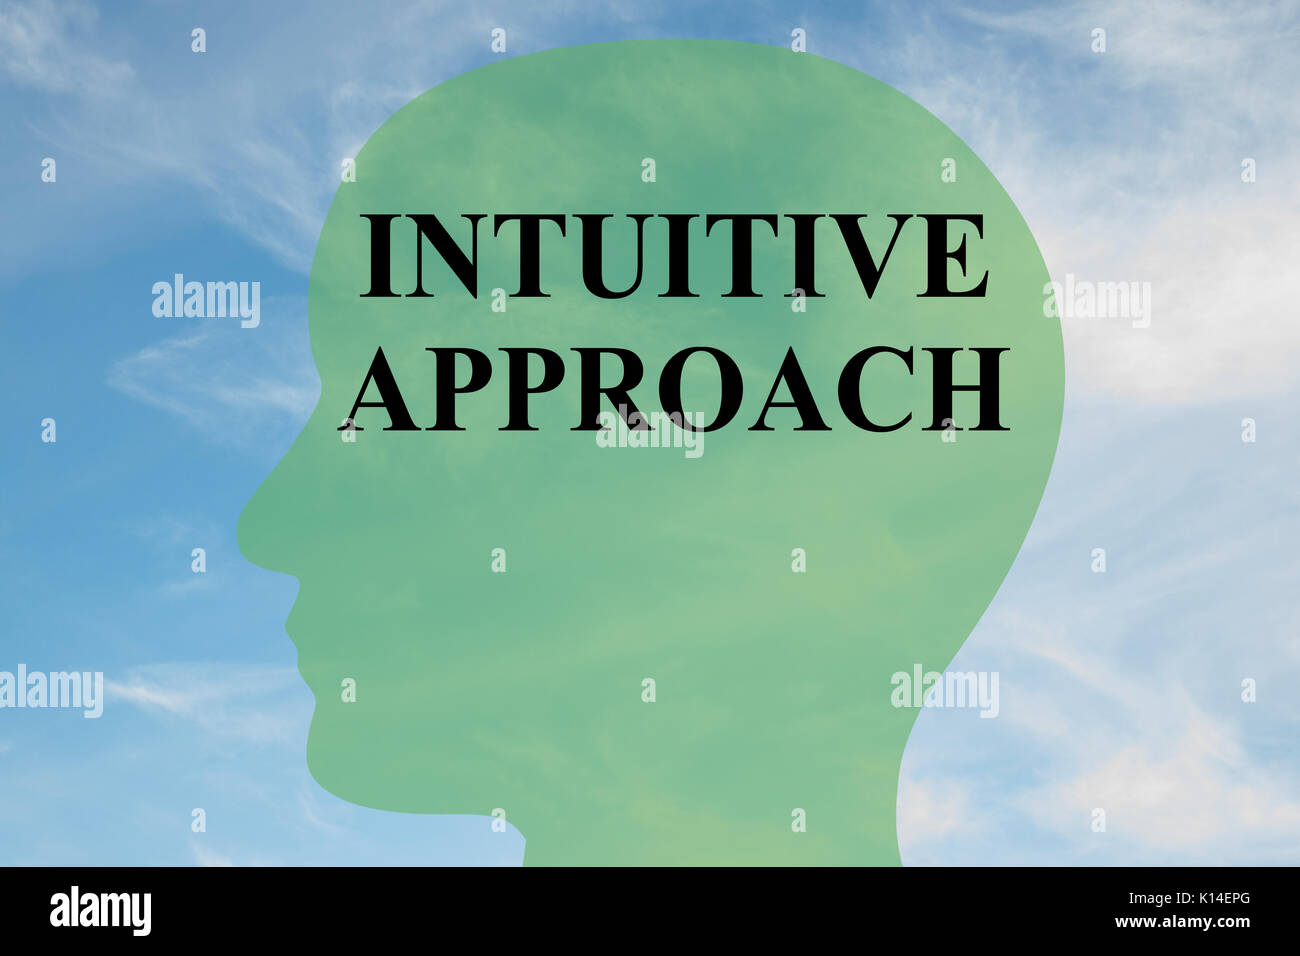 Render illustration of 'INTUITIVE APPROACH' script on head silhouette, with cloudy sky as a background. - Stock Image